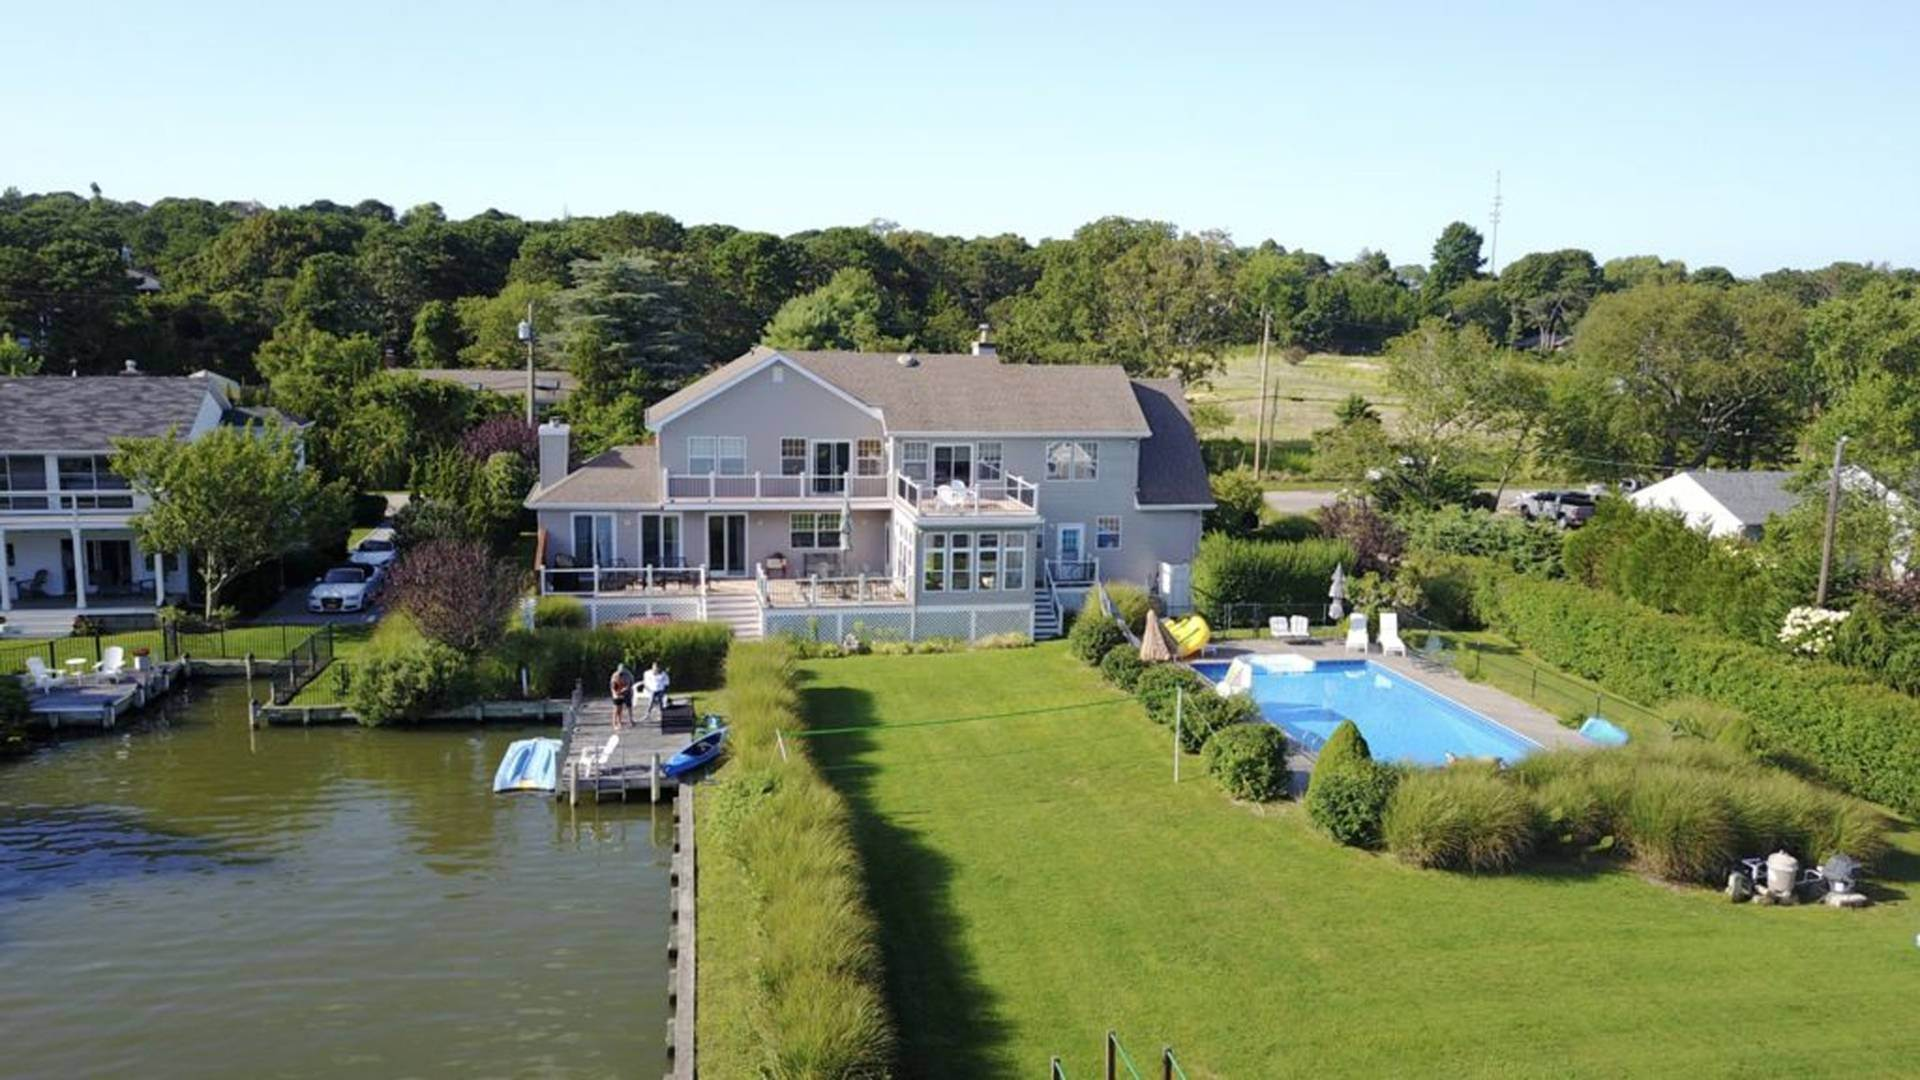 Single Family Home for Sale at Escape To The Bay For Your Dock, Hot Tub And Waterside Pool 56 Middle Pond Road, Southampton, NY 11968